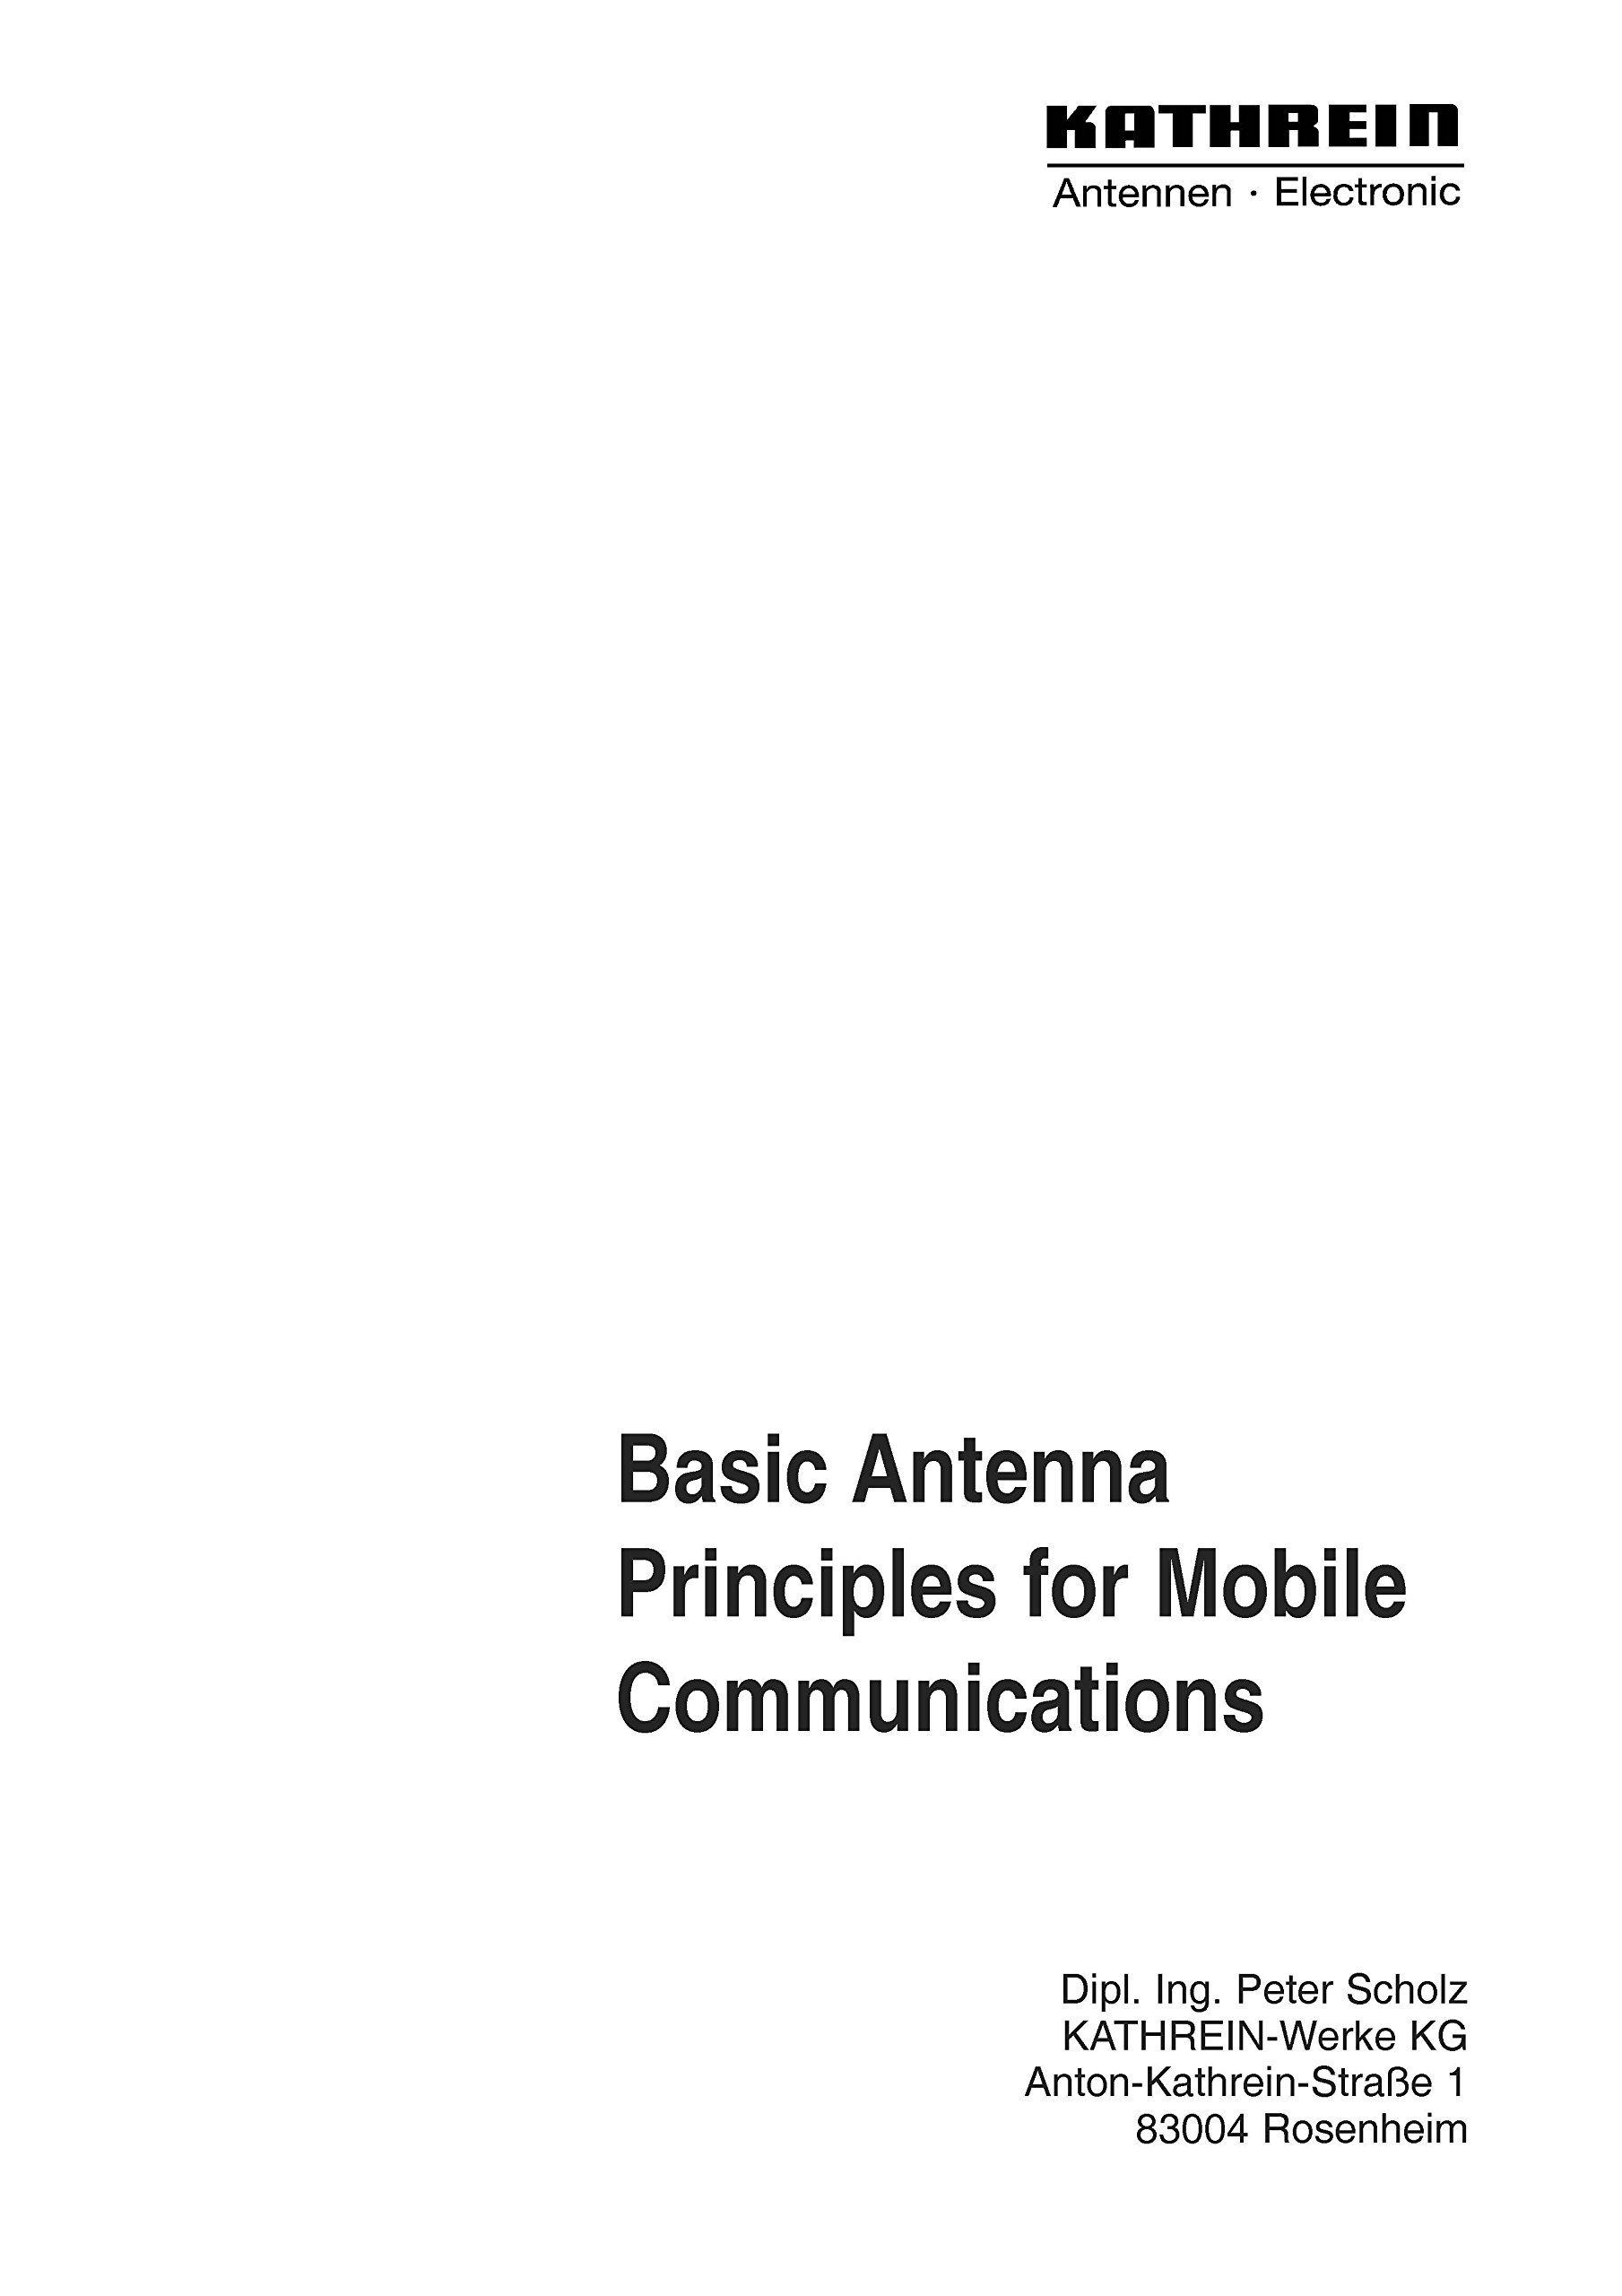 Basic Antenna Principles for Mobile Communications (Kathrein) [Loose ...